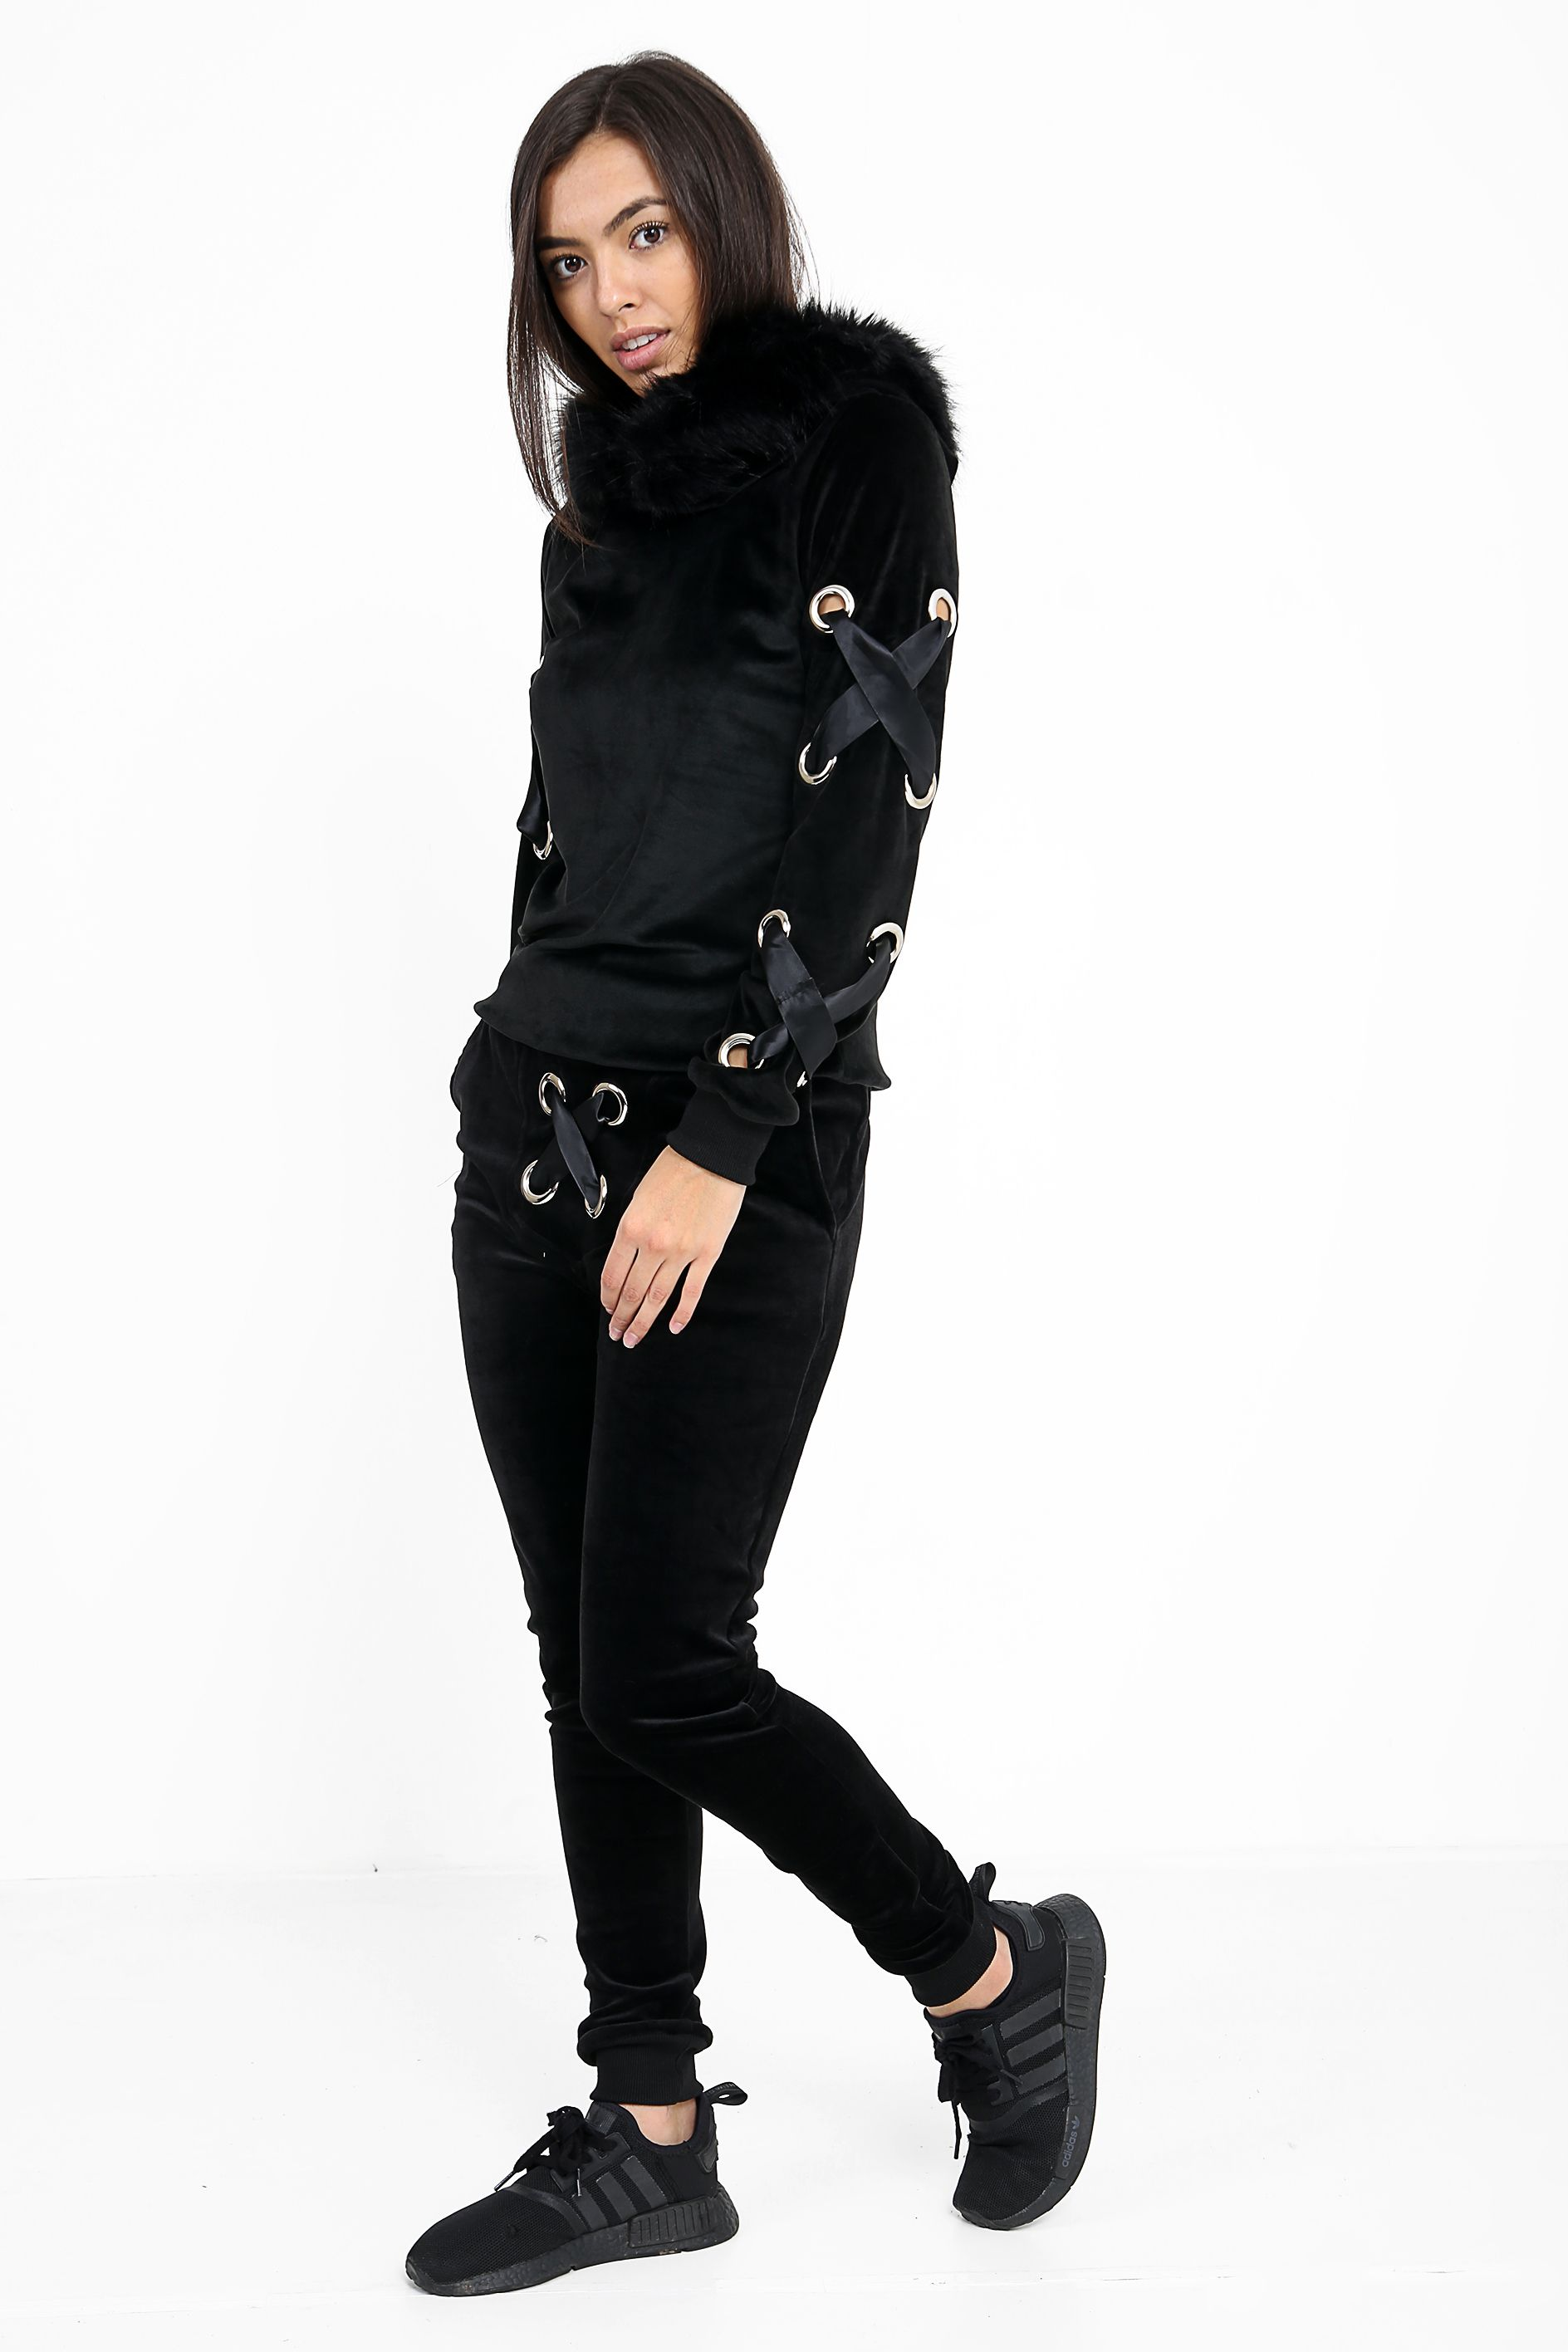 ced85a142ad We LOVE this black velvet loungewear tracksuit! Available at Jadoreyou.com